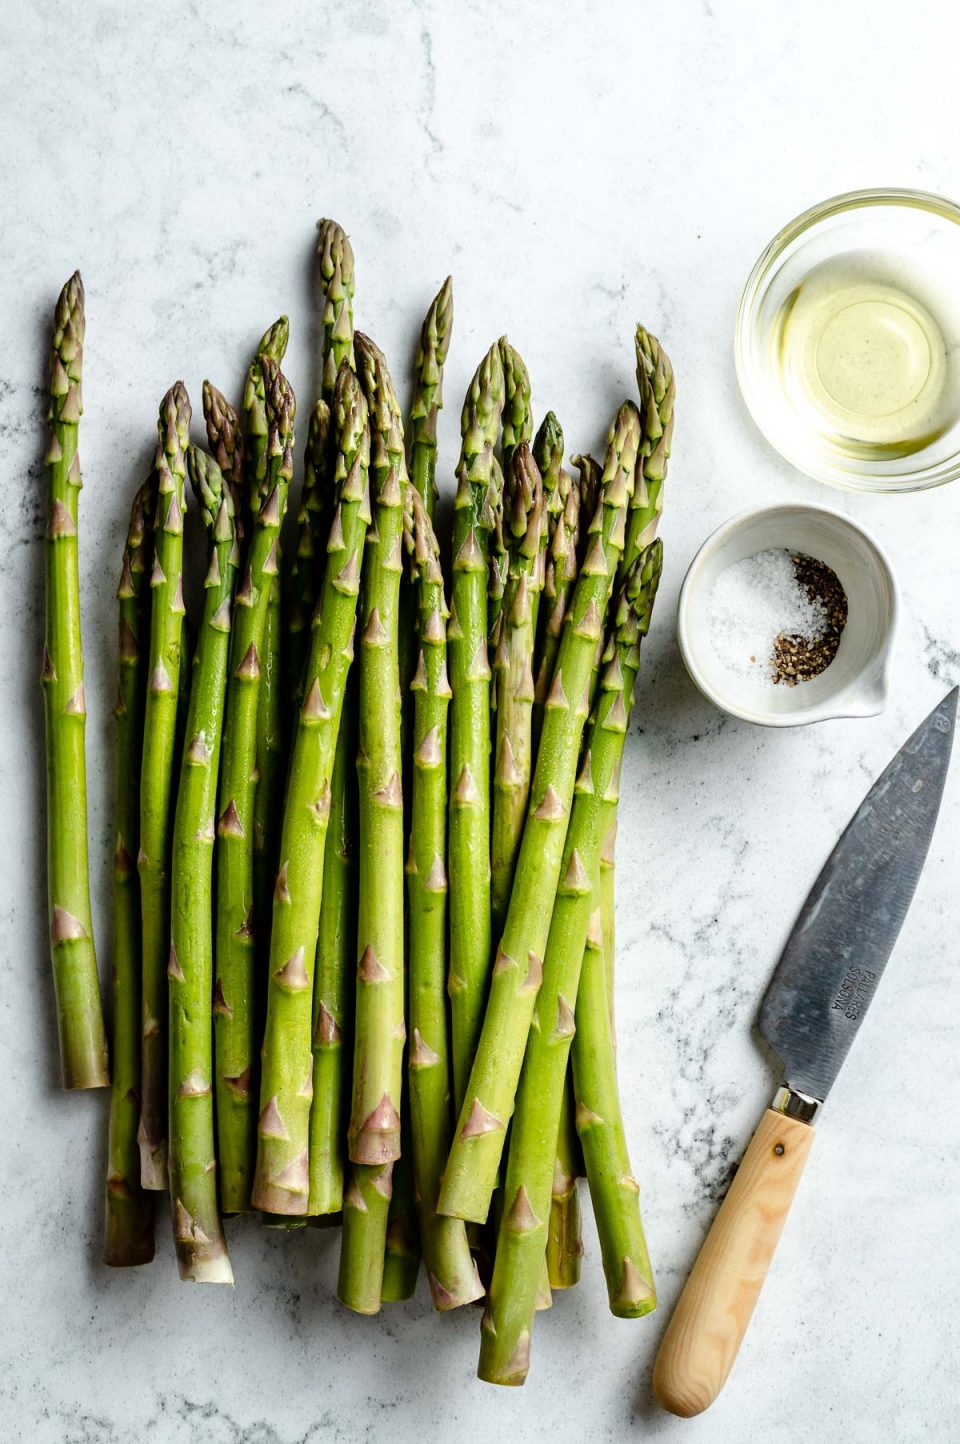 Grilled asparagus ingredients arranged on a white & grey marble surface - asparagus, avocado oil, kosher salt, & ground black pepper. A pairing knife rests on the surface next to the ingredients.